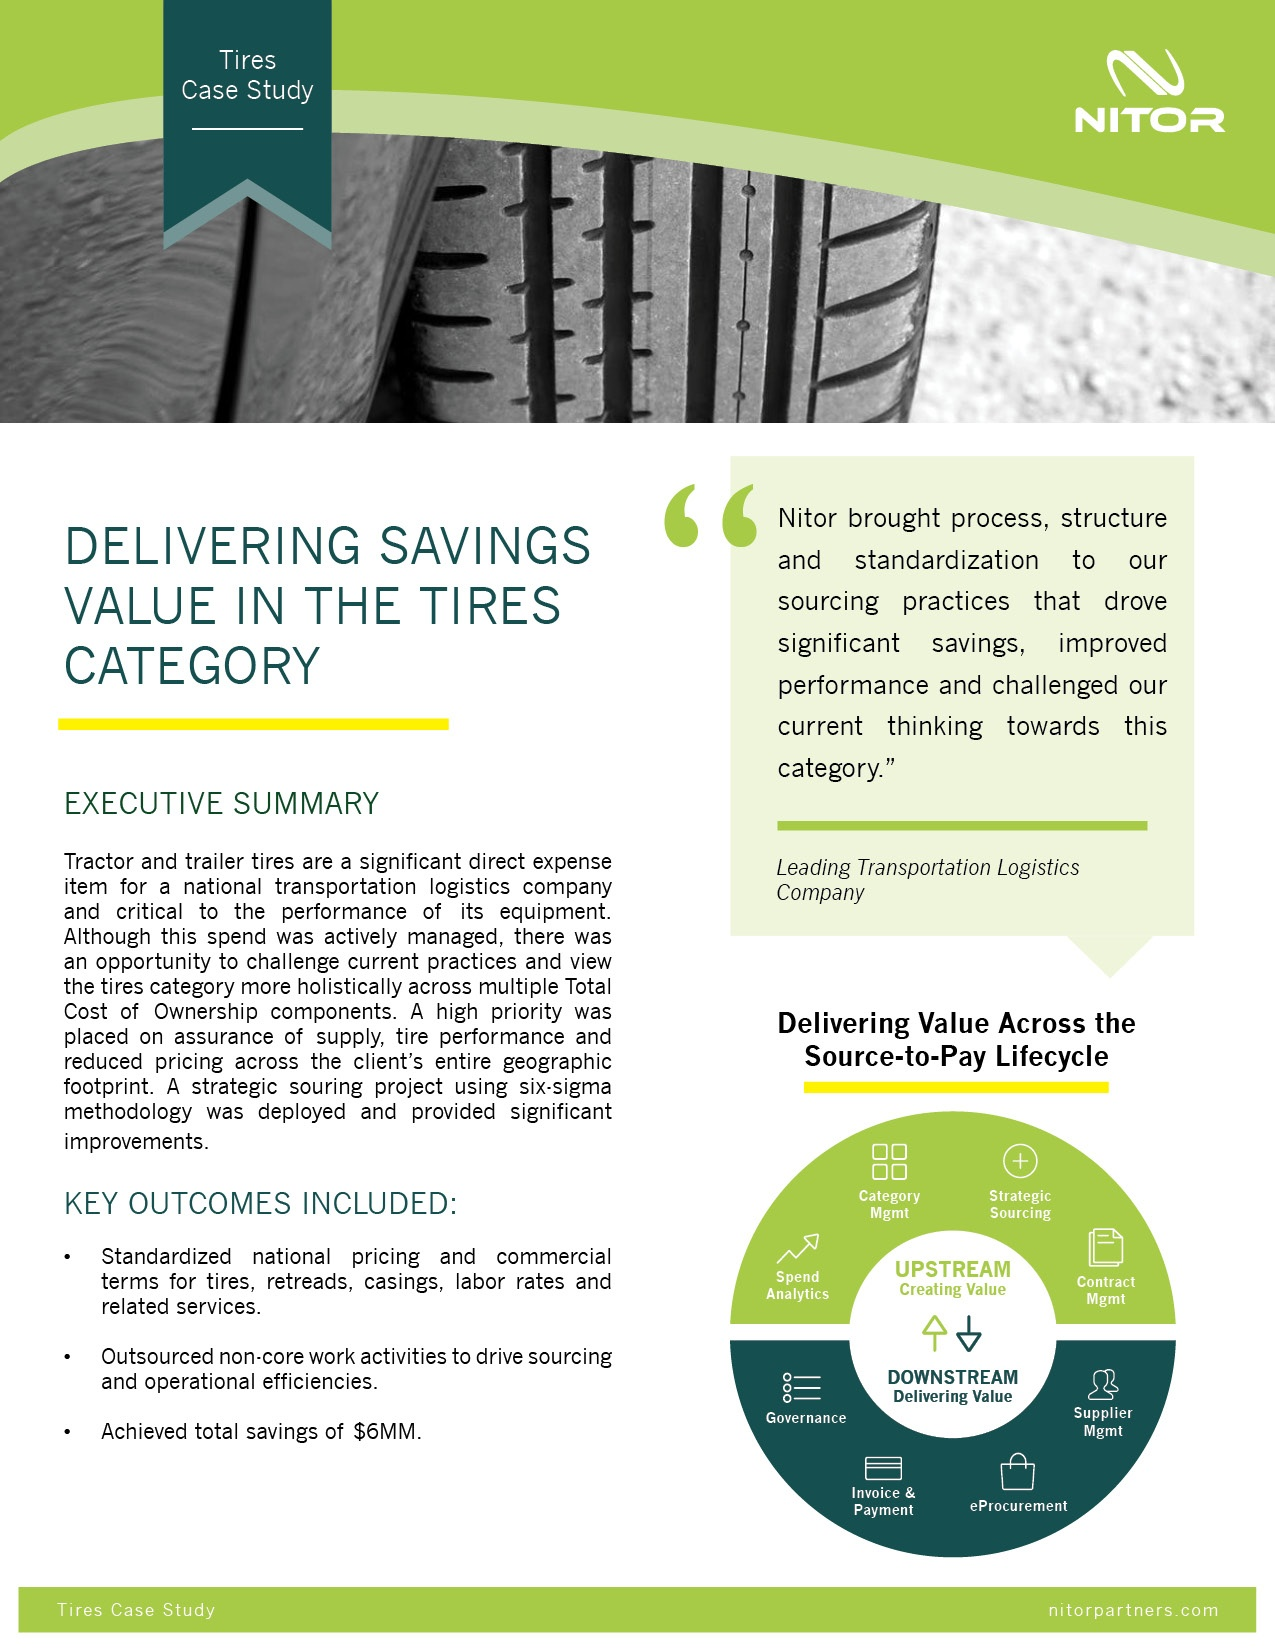 Nitor_CaseStudy_Tires-1.jpg